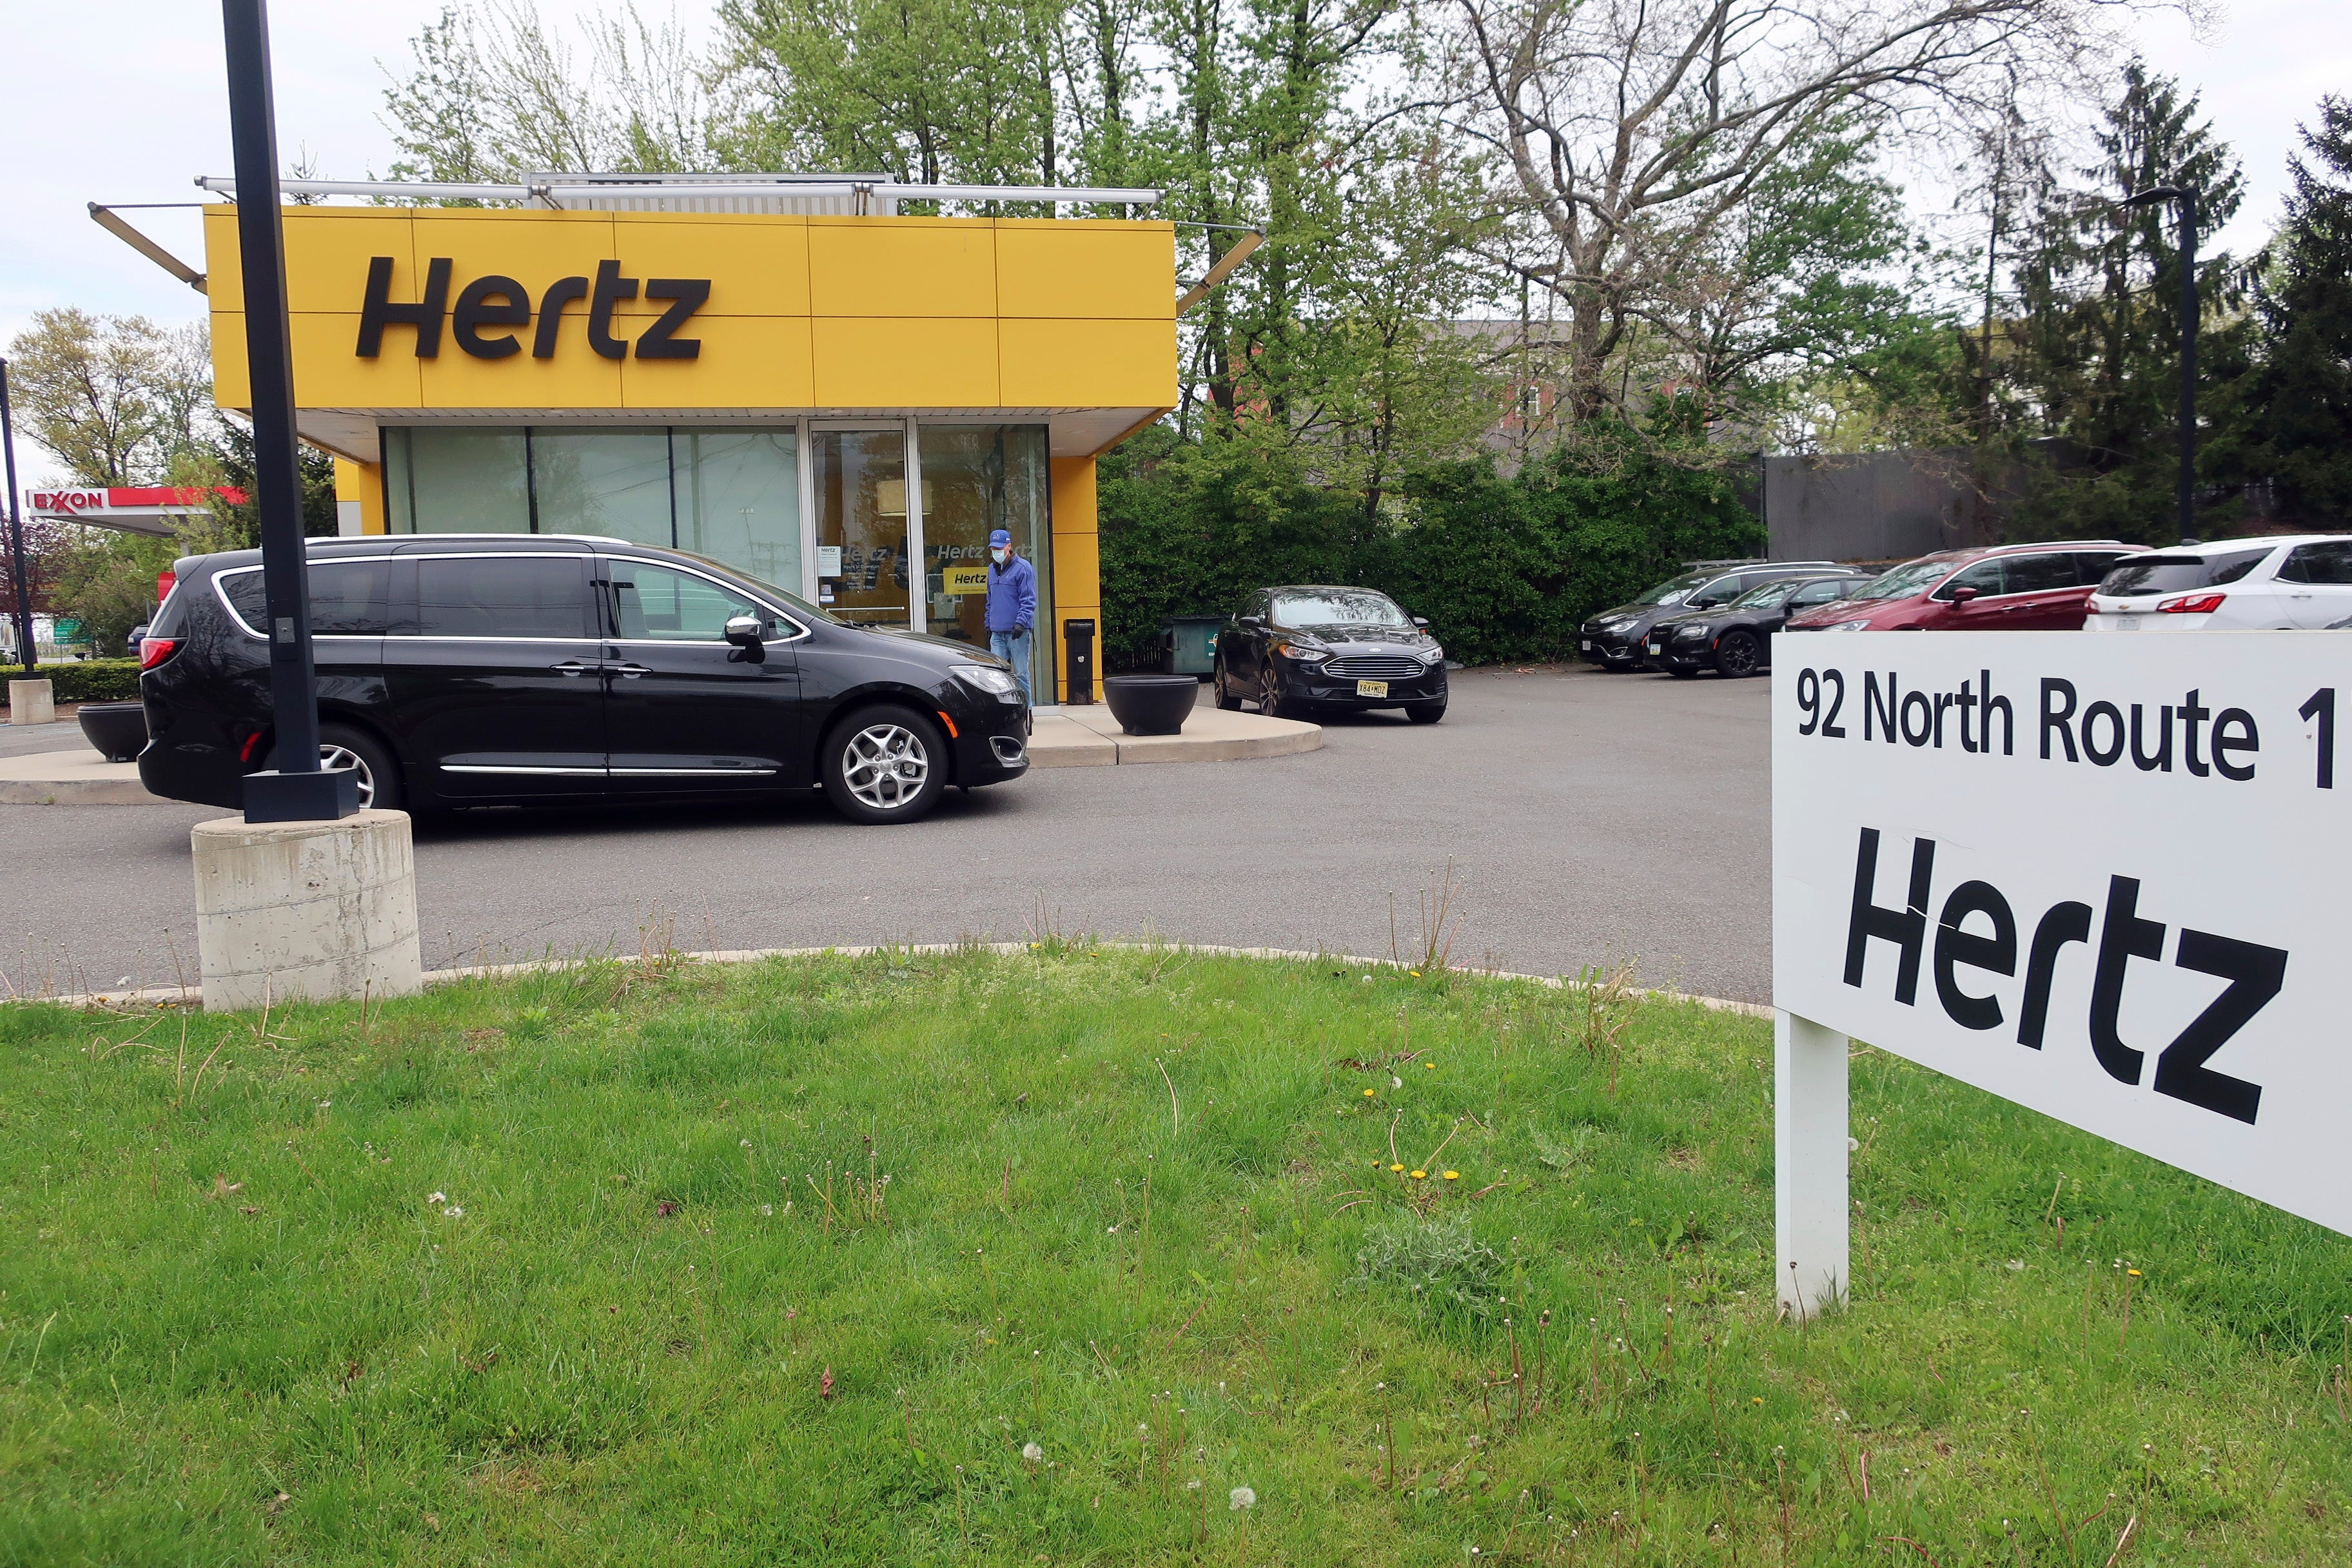 Coronavirus live updates: Trump calls for houses of worship to open; car rental giant Hertz files for bankruptcy